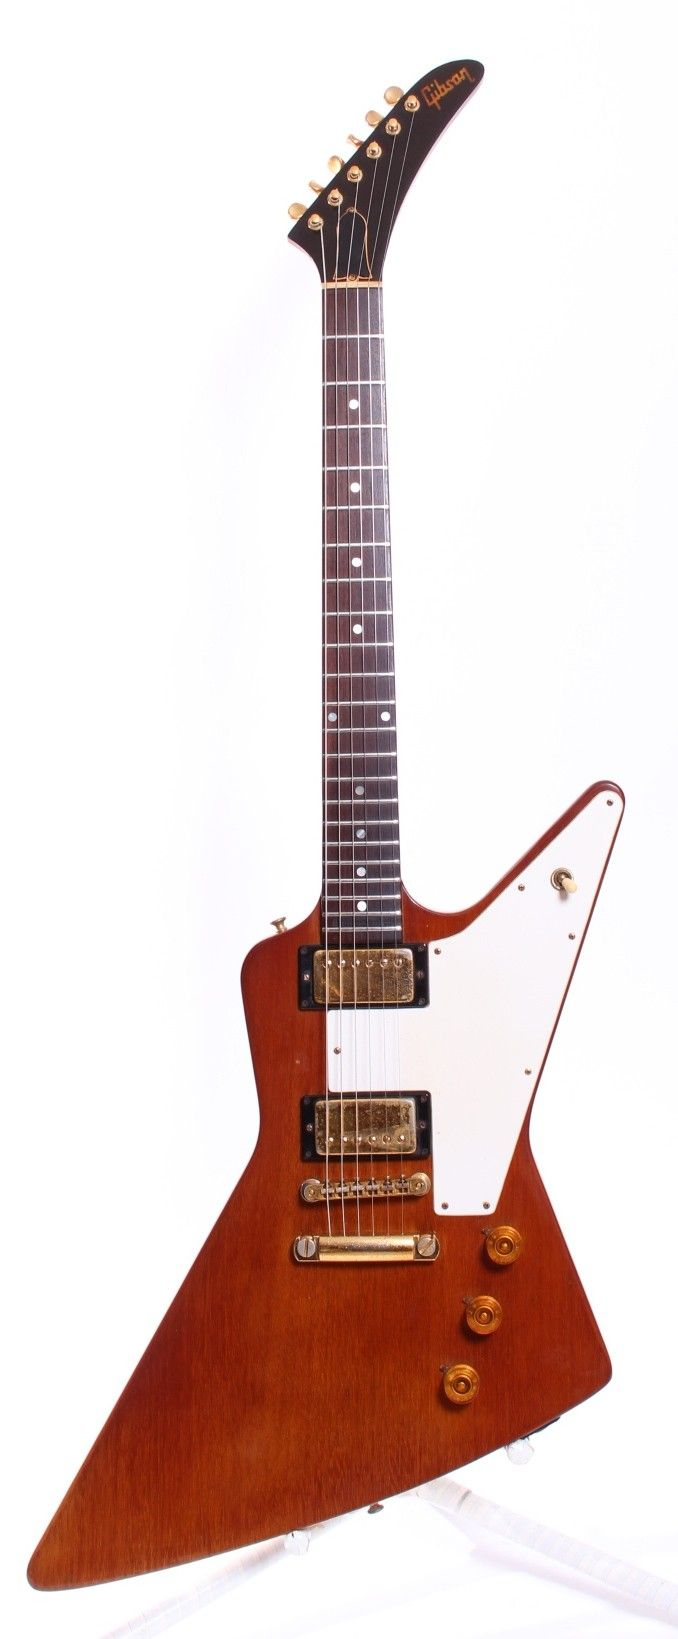 Yeahman's Vintage And Used Guitars - 1976 Gibson Explorer Limited Edition - Natural